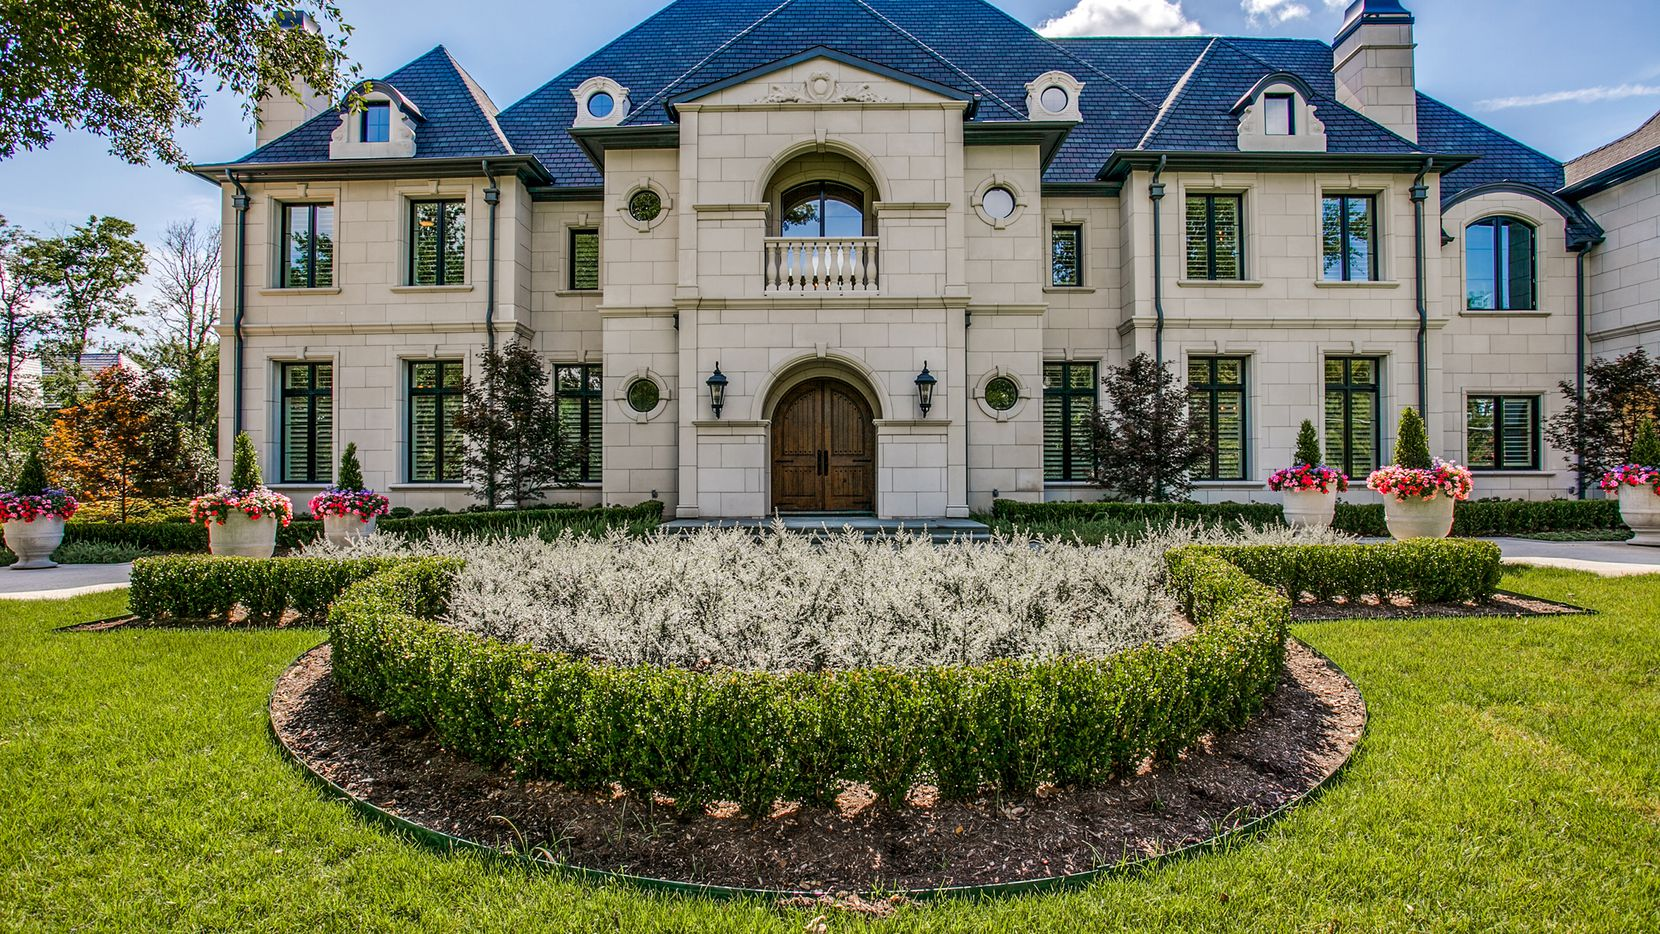 Almost 1,850 million dollar homes have sold in the Dallas-Fort Worth area this year.